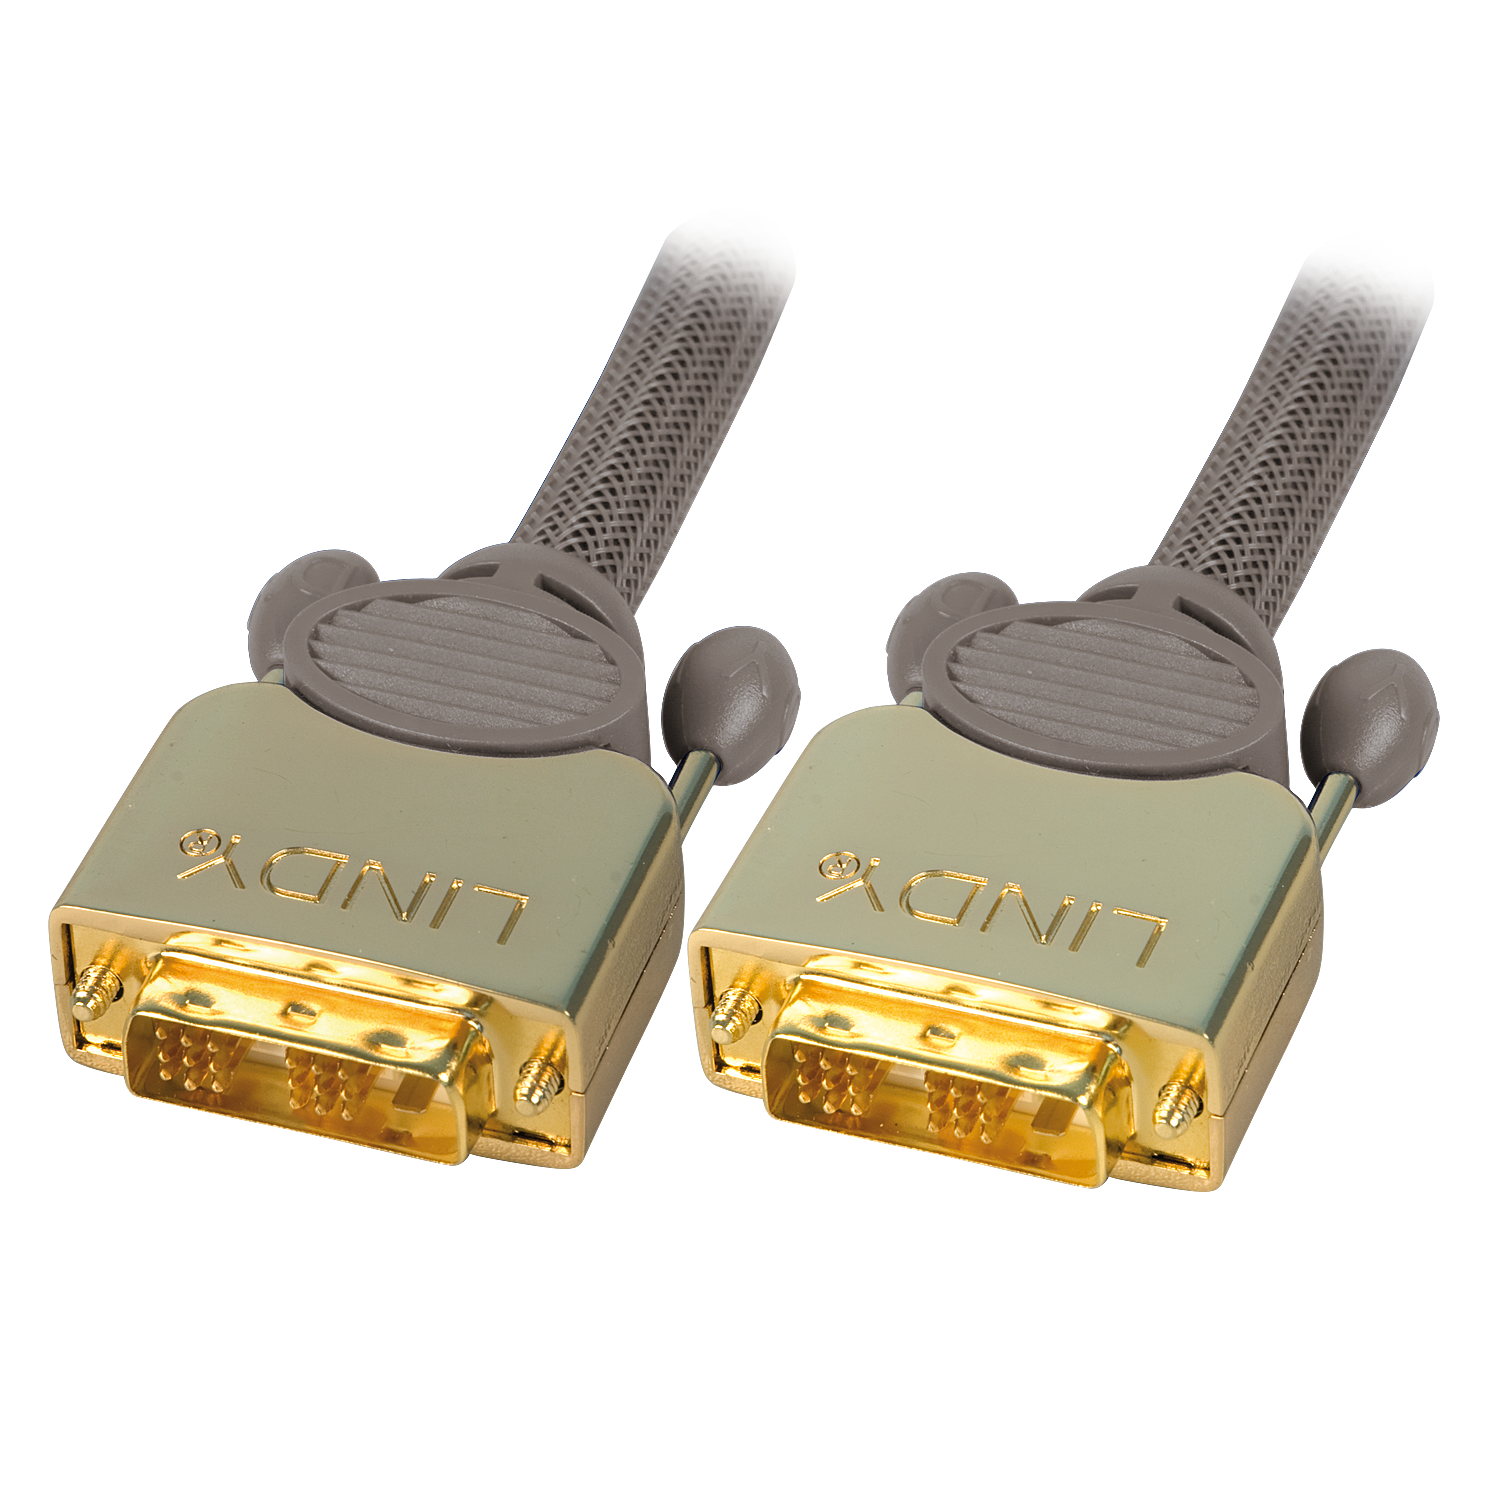 GOLD DVI-D SLD Single Link 15m